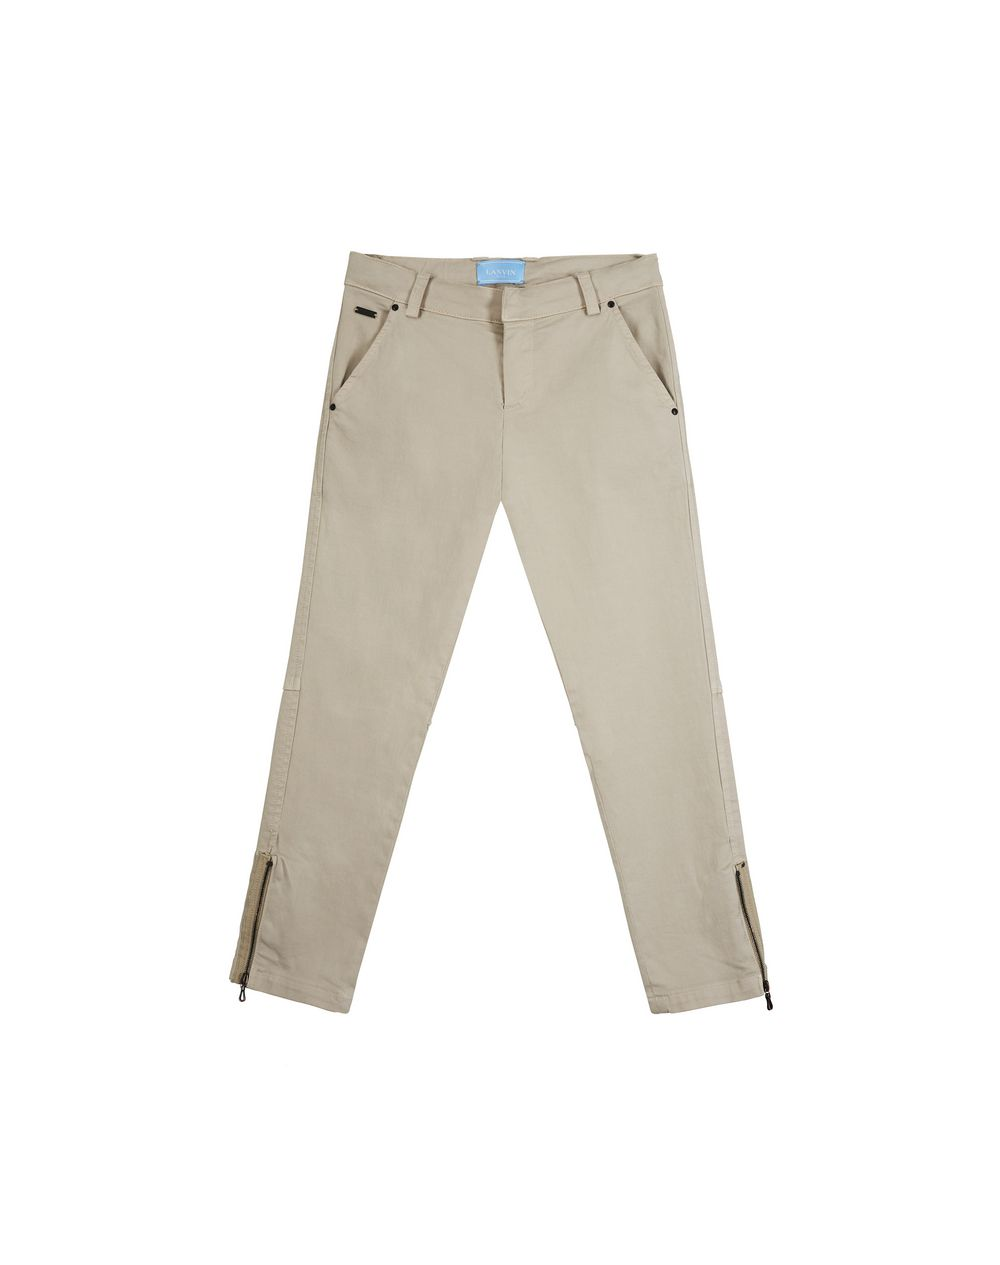 CASUAL BEIGE TROUSERS - 3-10 years - Lanvin